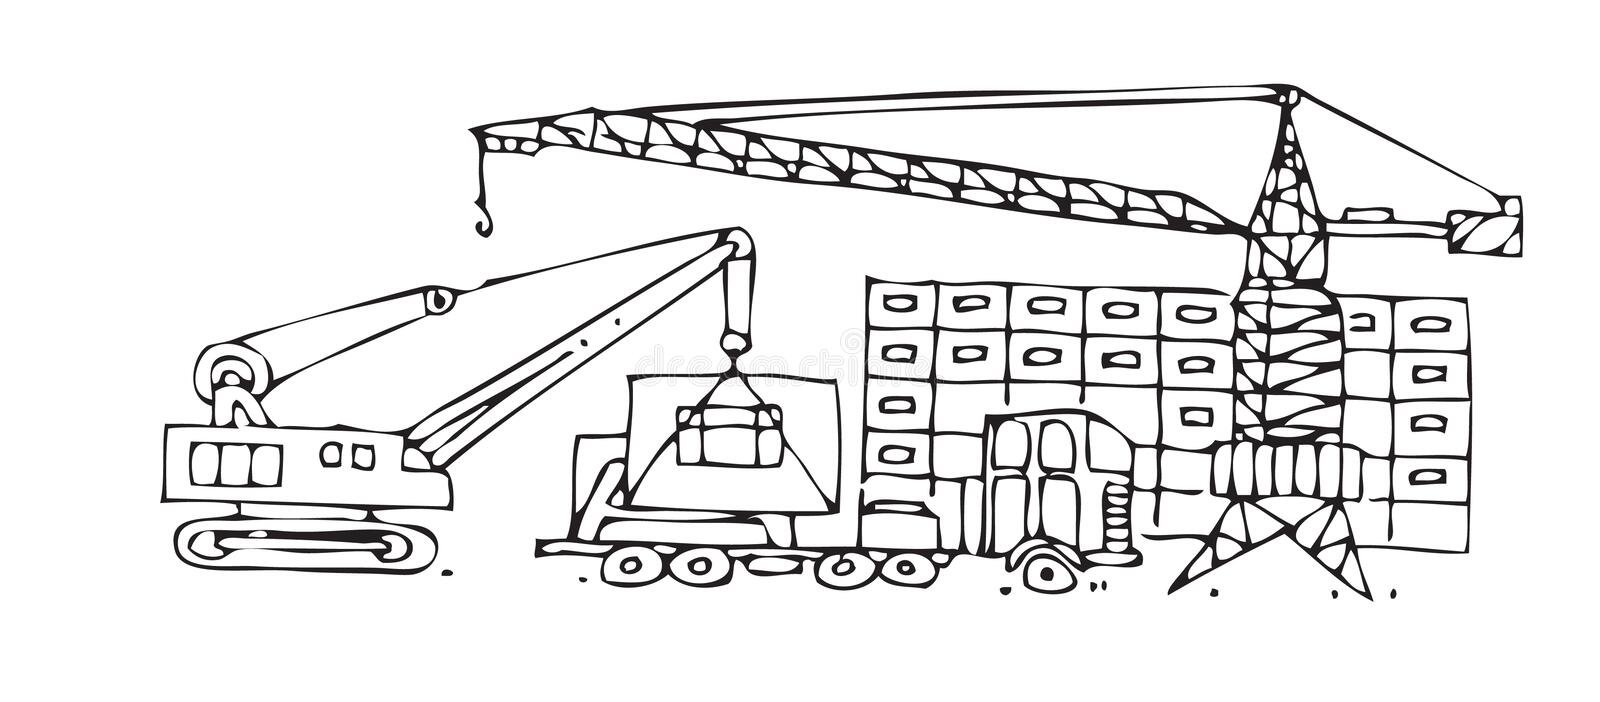 Beijing construction site. Vector image of a construction work site vector illustration